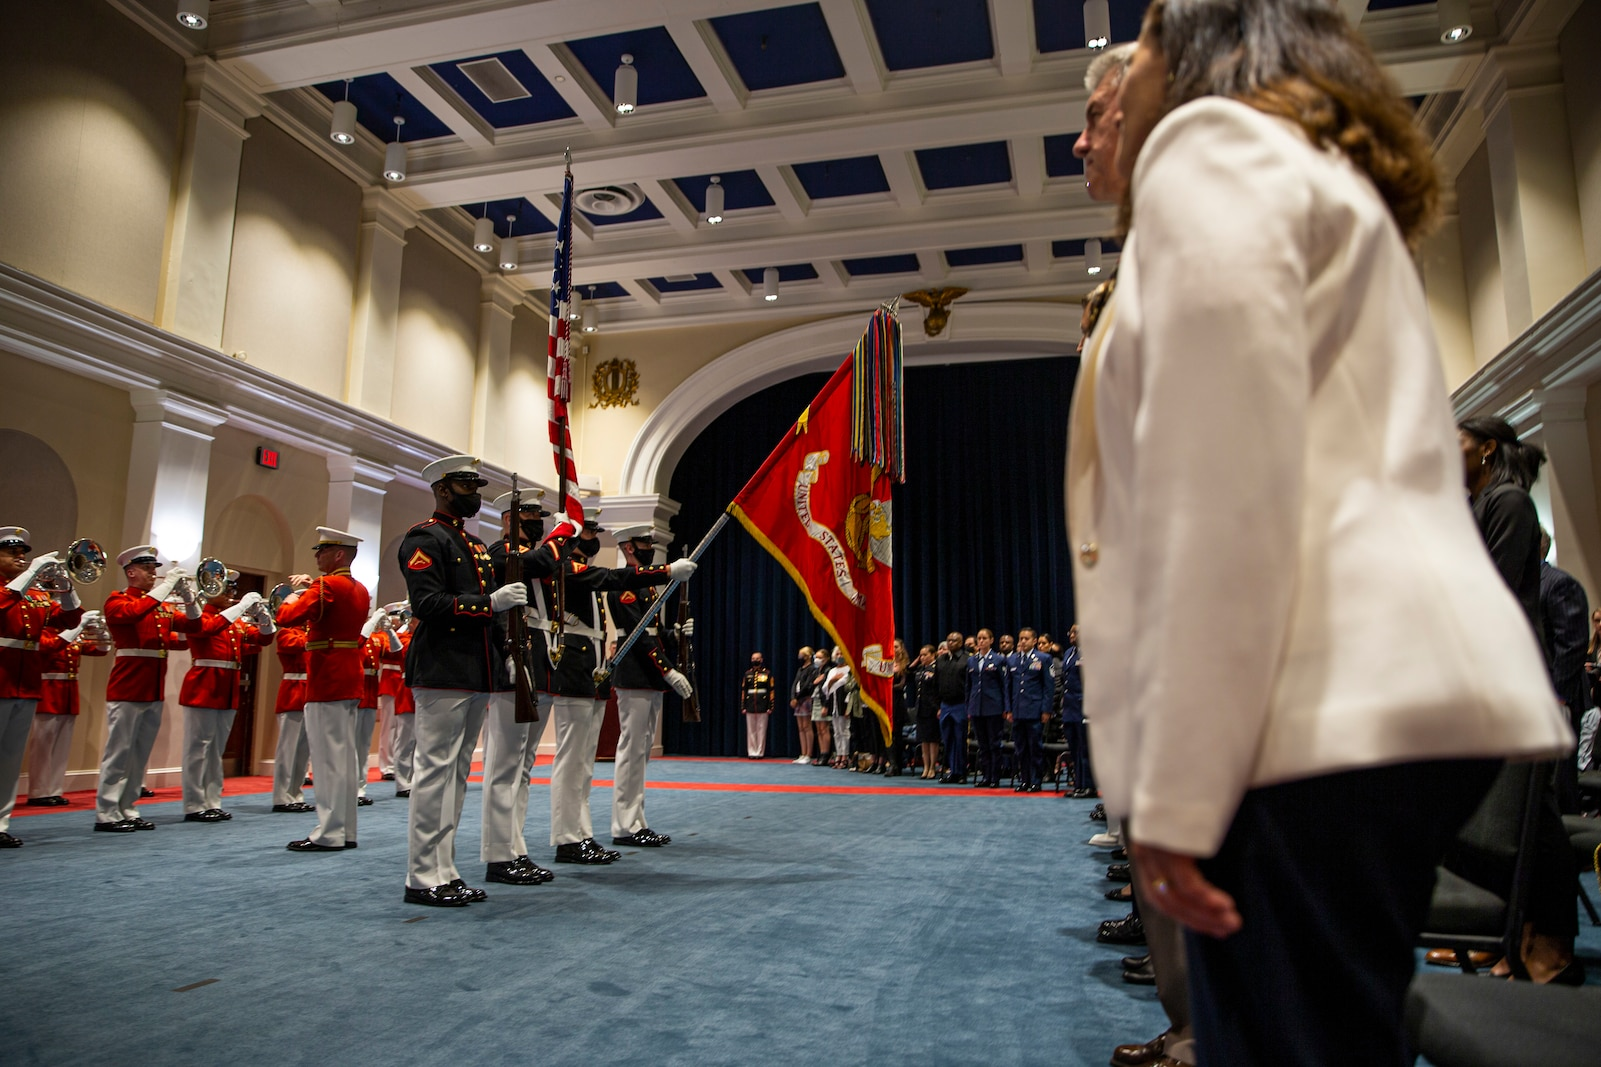 Marines with the Official Marine Corps Color Guard present the National Ensign during the Friday Evening Parade at Marine Barracks Washington, D.C., May 7, 2021.